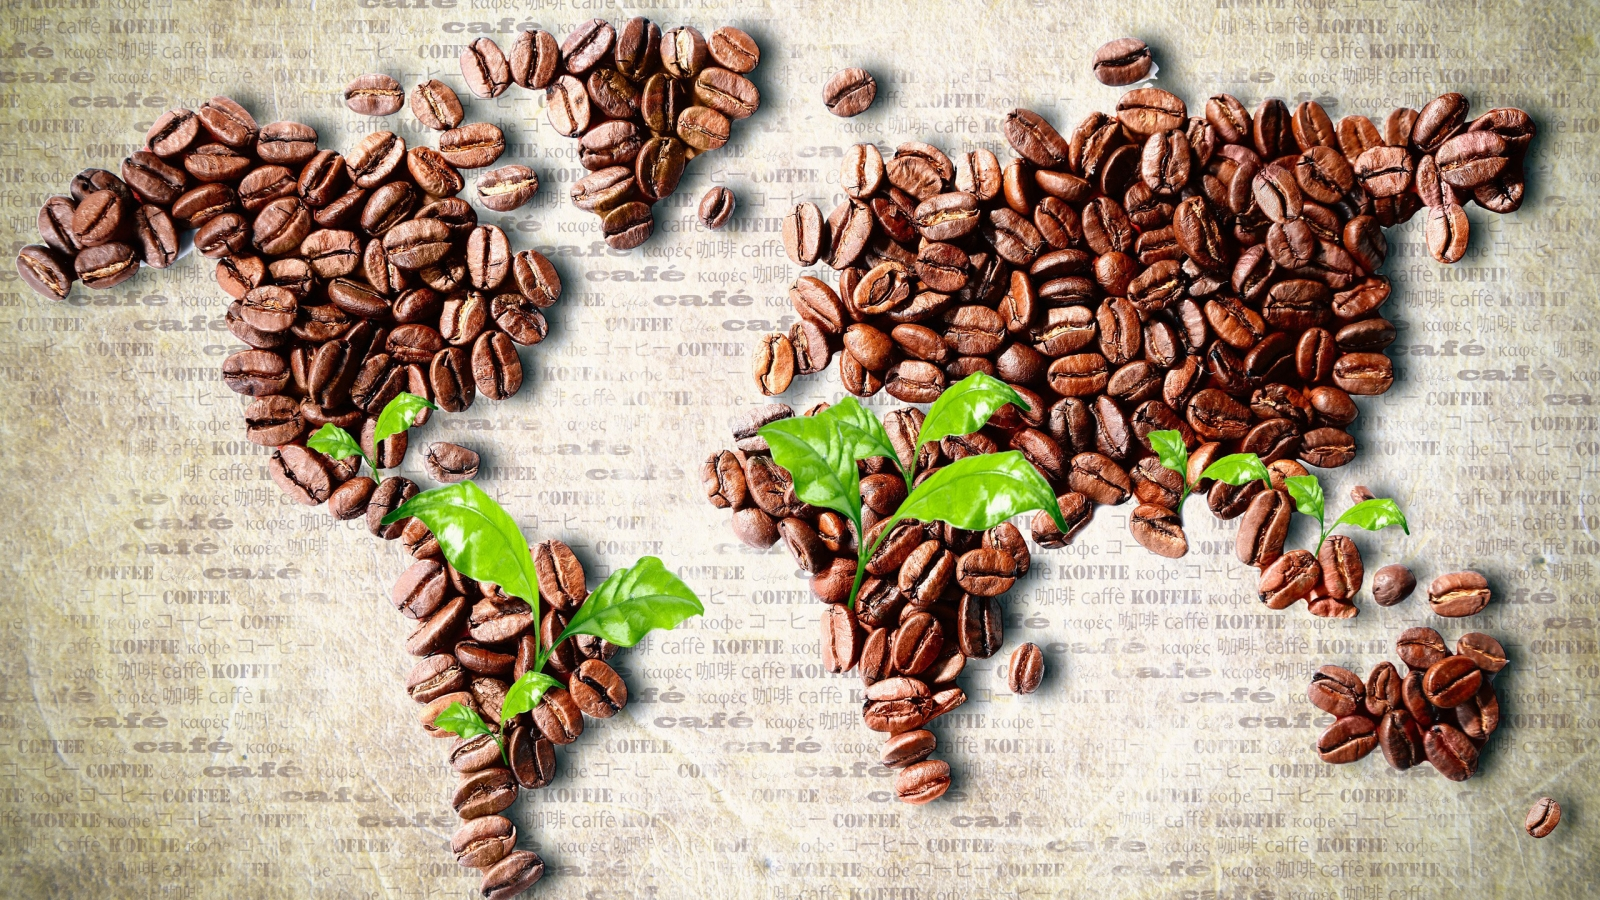 Coffee Beans World Map for 1600 x 900 HDTV resolution